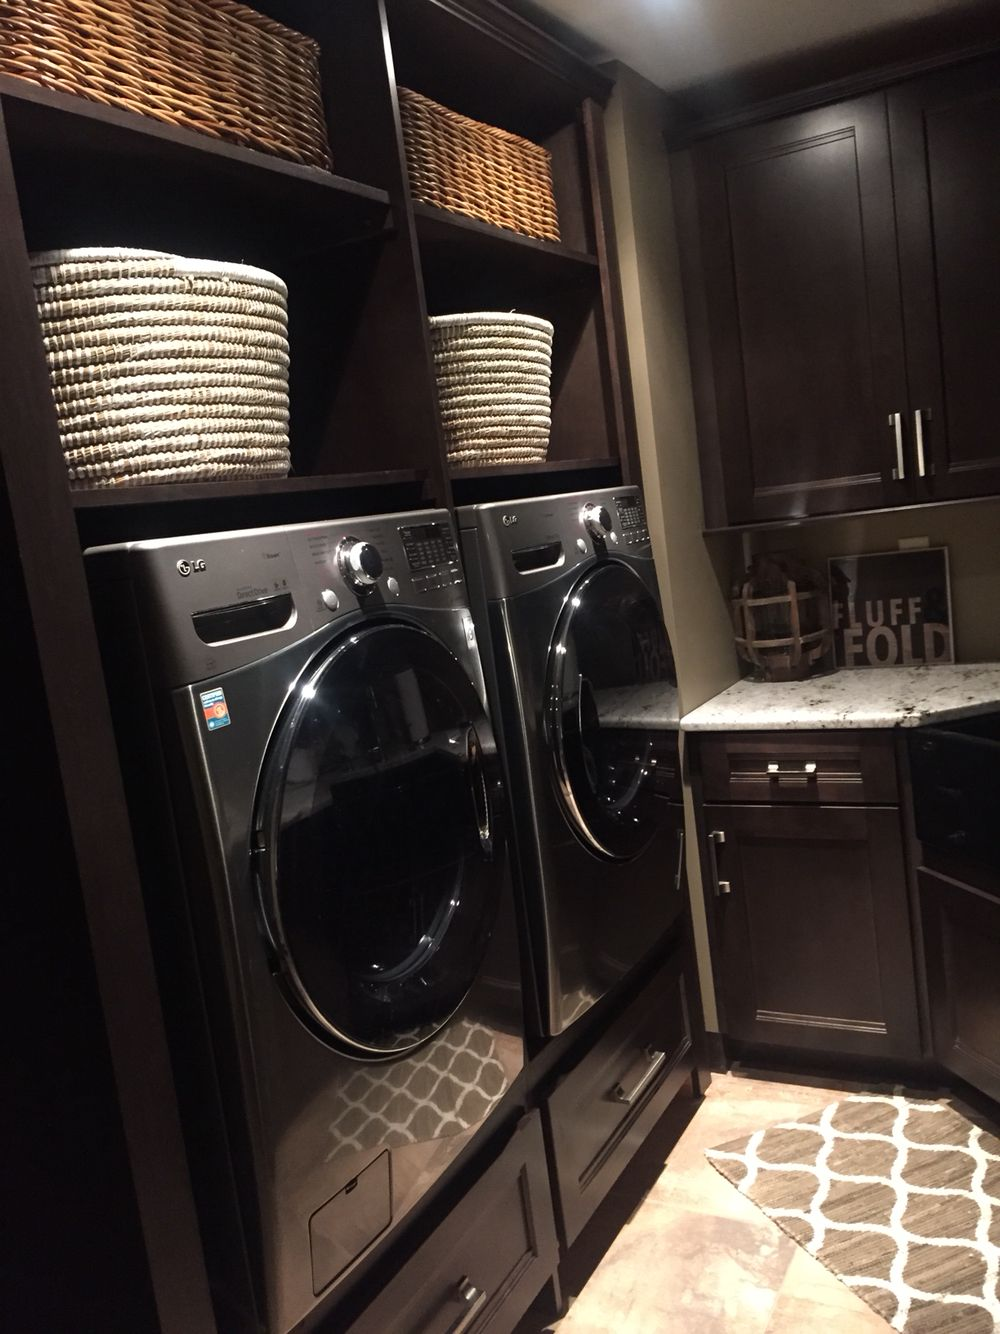 Laundry Room Built In Cabinet Design Side By Washer